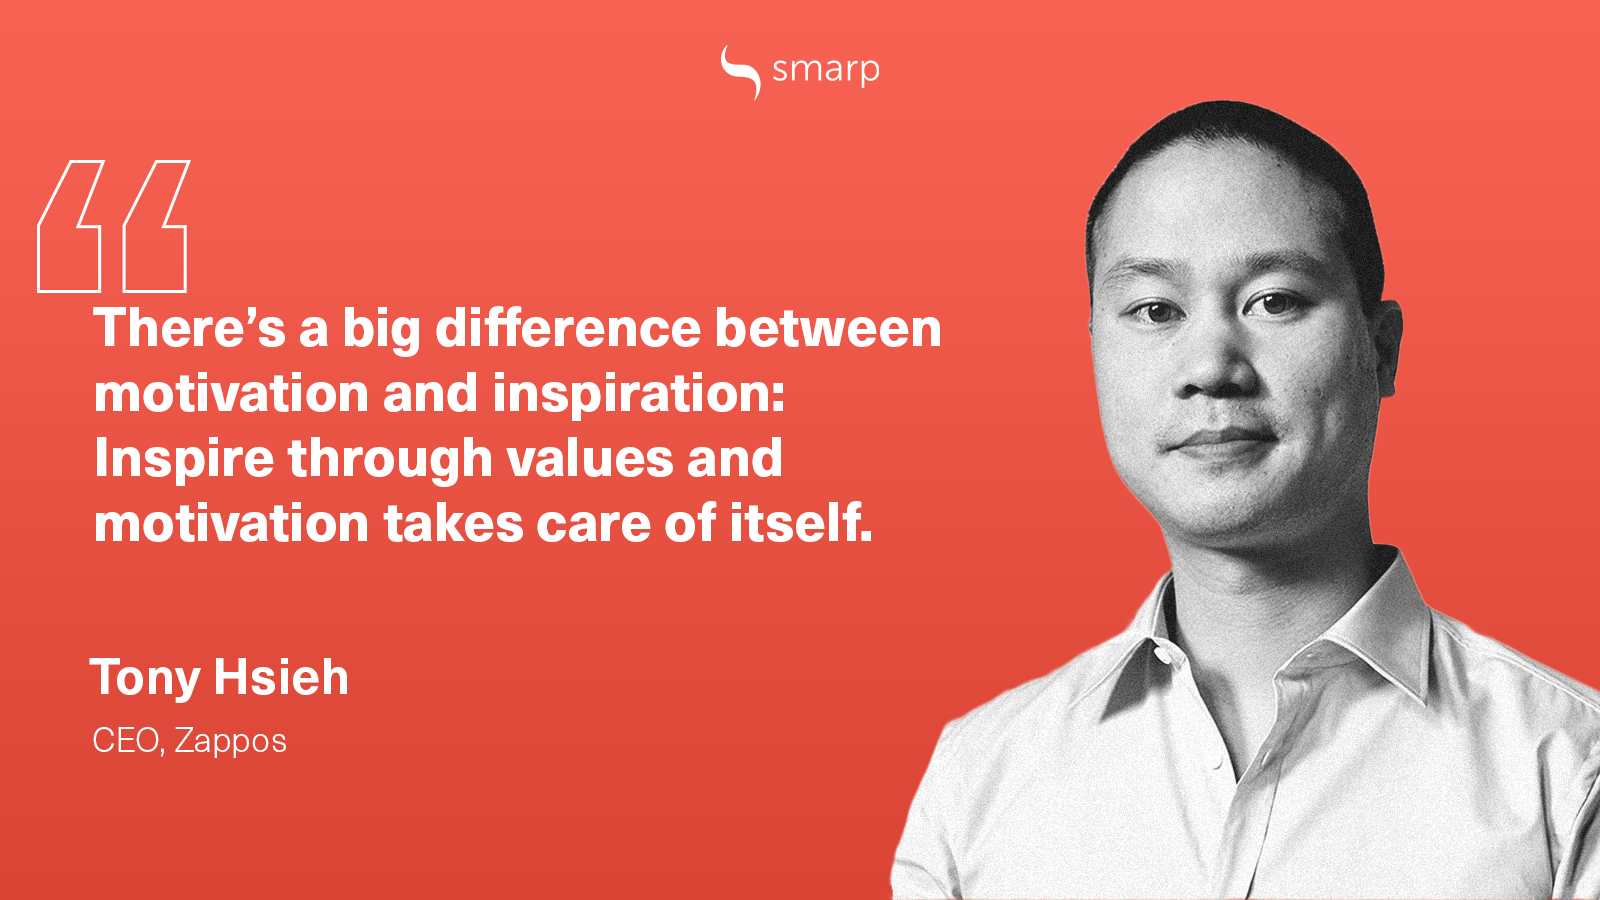 tony hsieh and leadership skills in the workplace